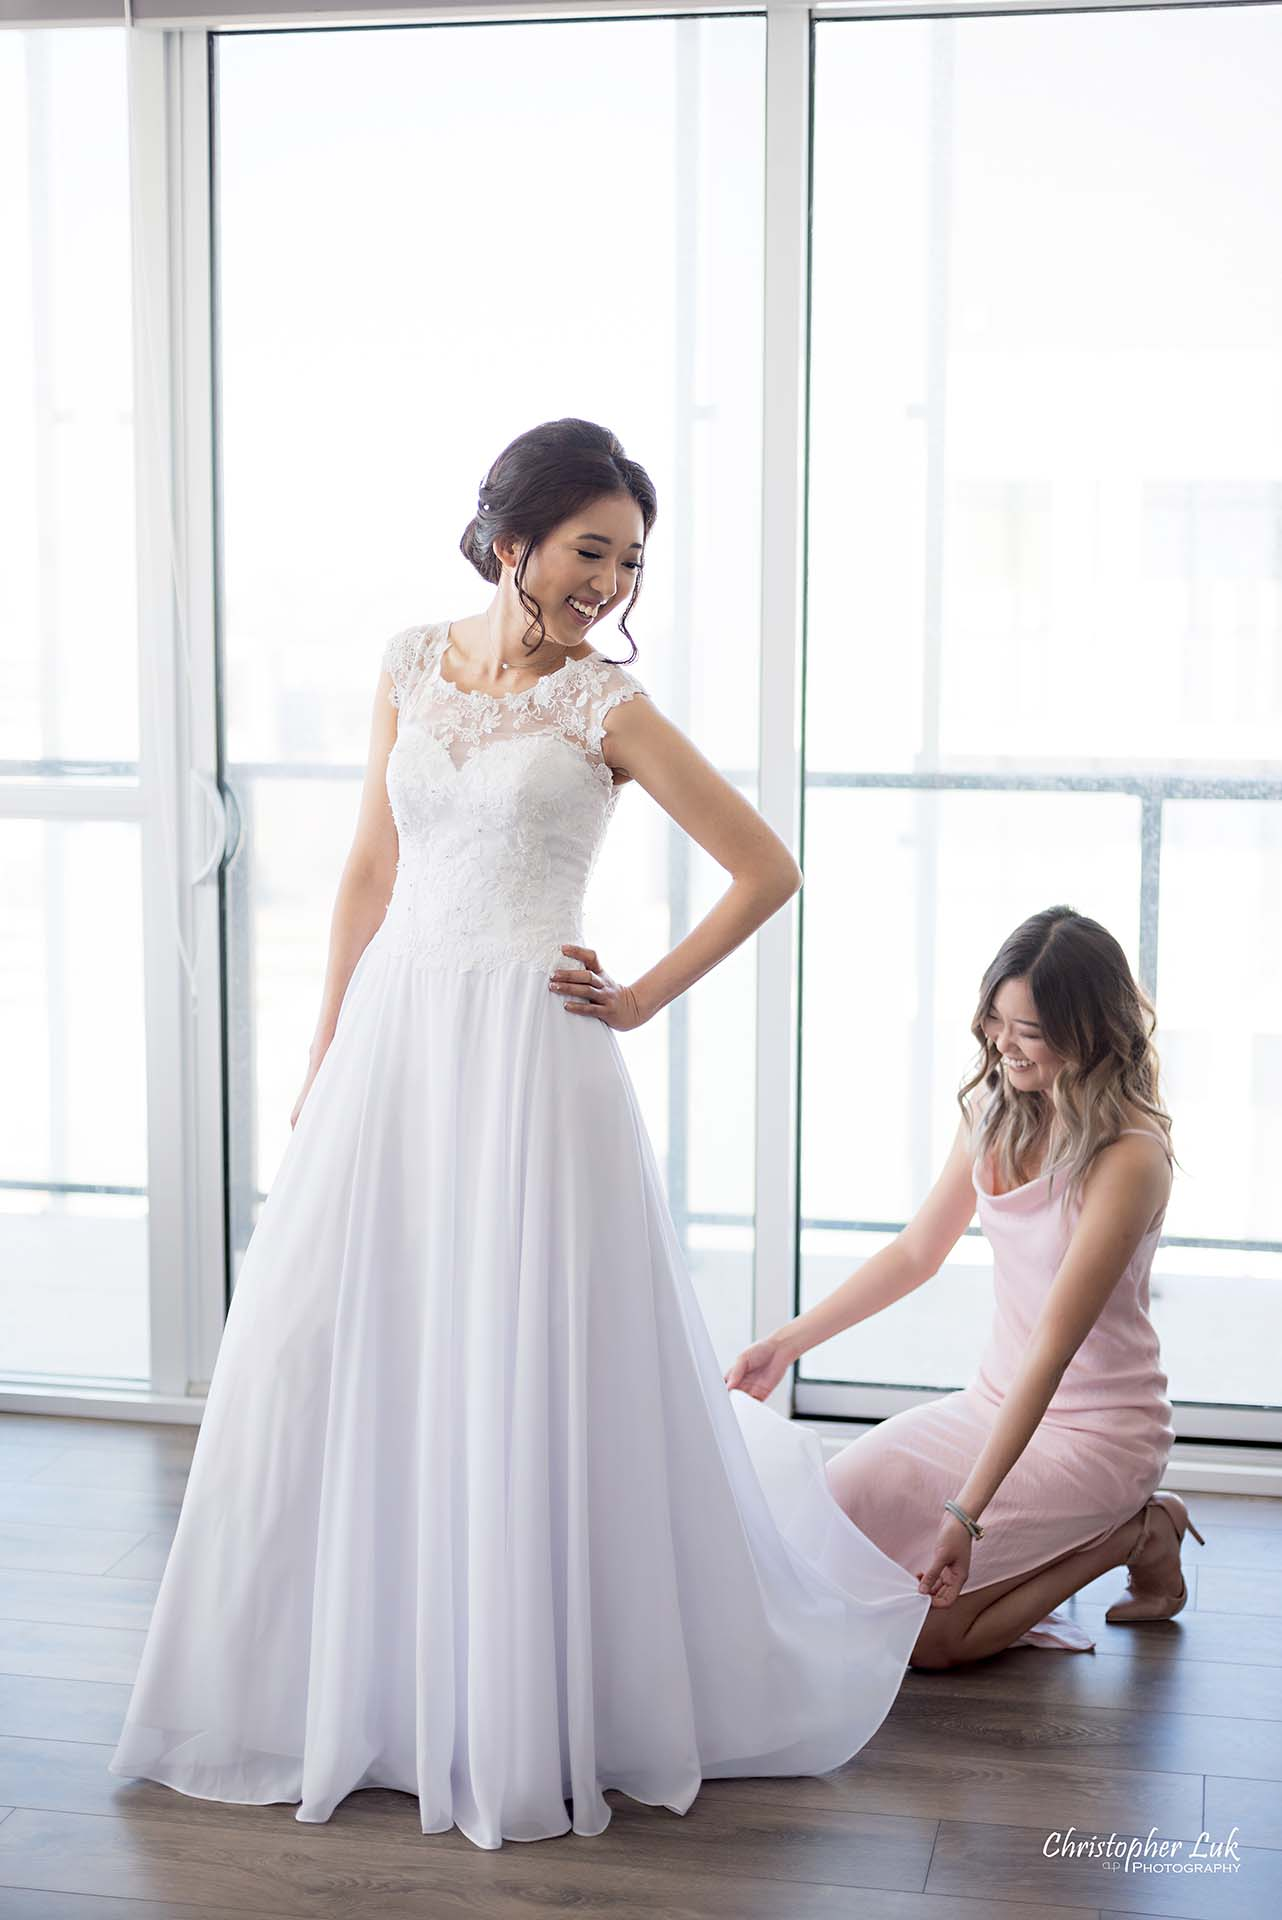 Christopher Luk Toronto Wedding Photographer - Natural Candid Photojournalistic Bride Sister Maid of Honour Getting Ready Pink White Dress Smile Full Body